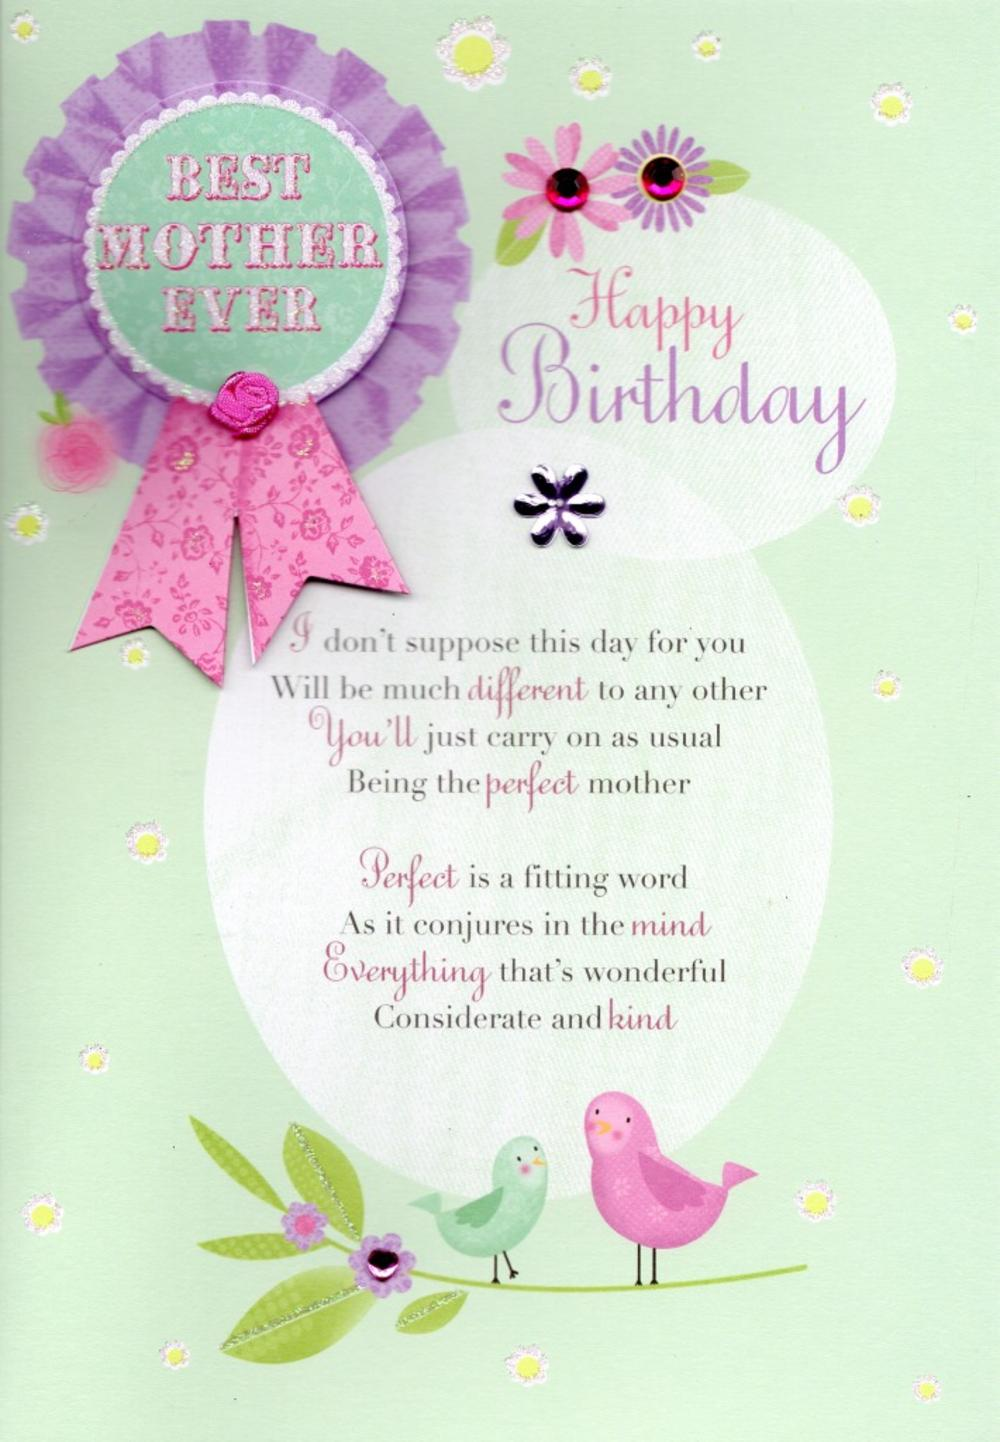 Best Mother Ever Birthday Greeting Card